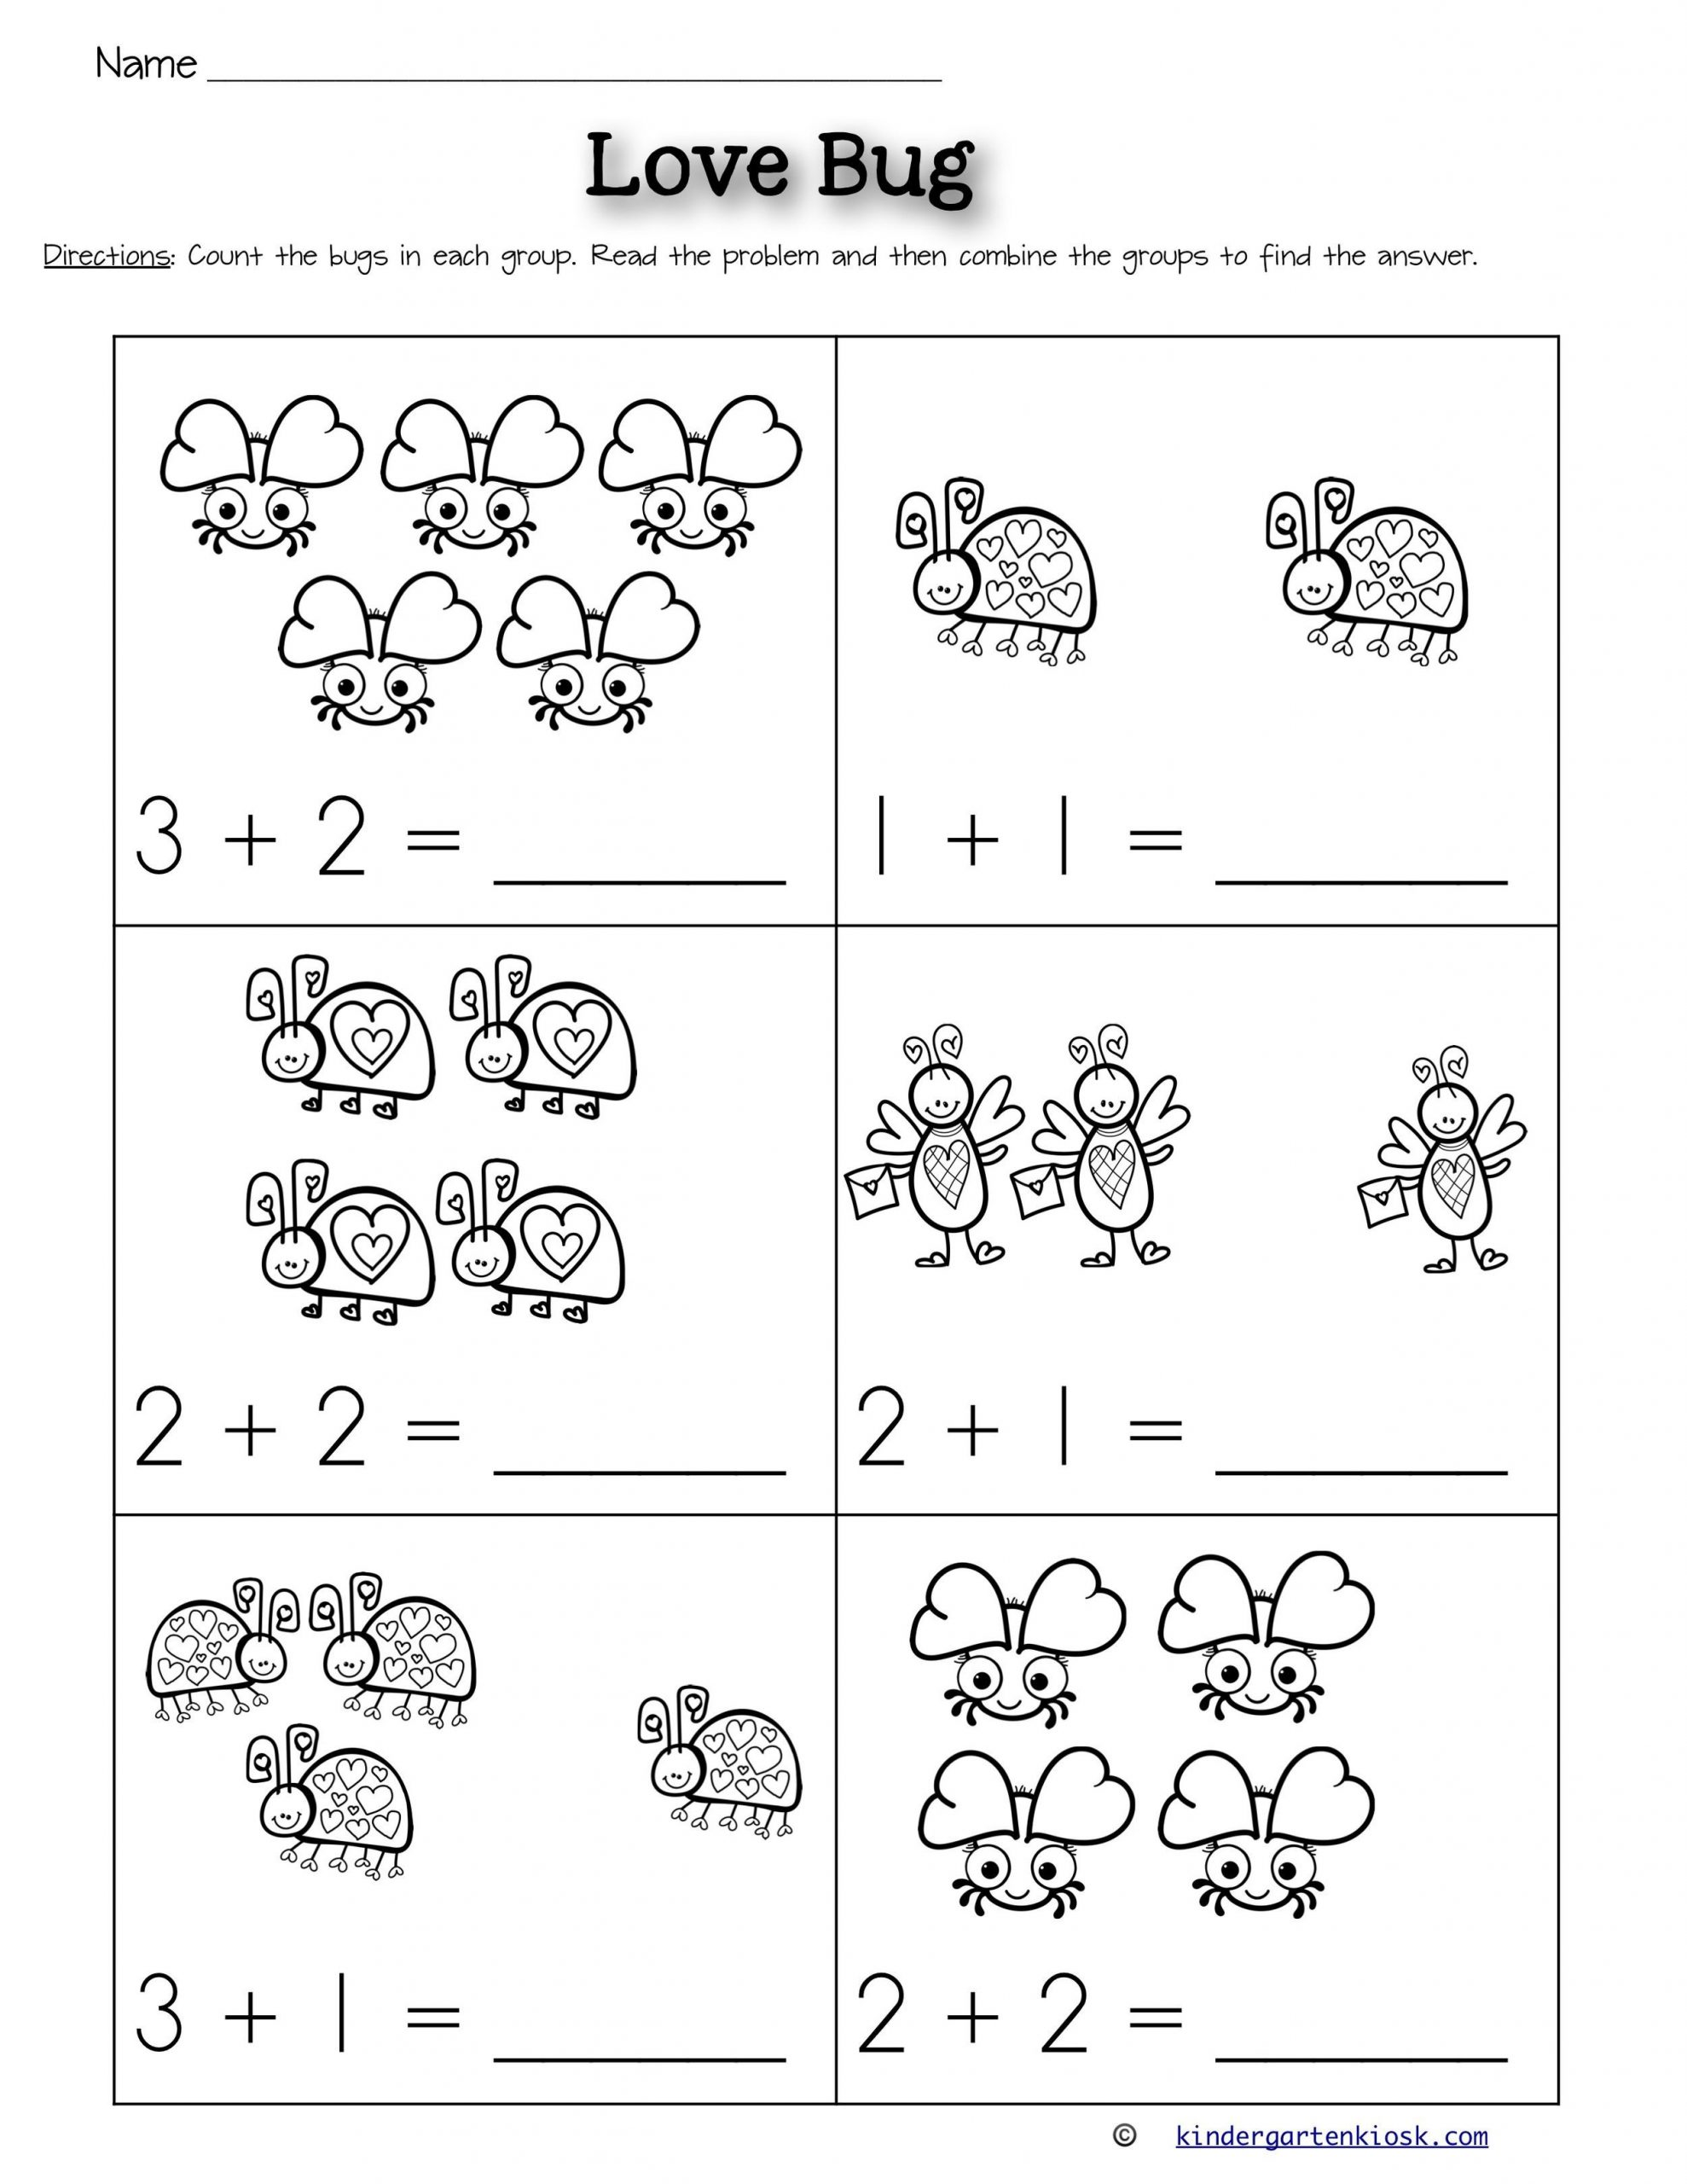 Kindergarten Math Worksheet Addition Addition 0 5 Worksheets February In 2020